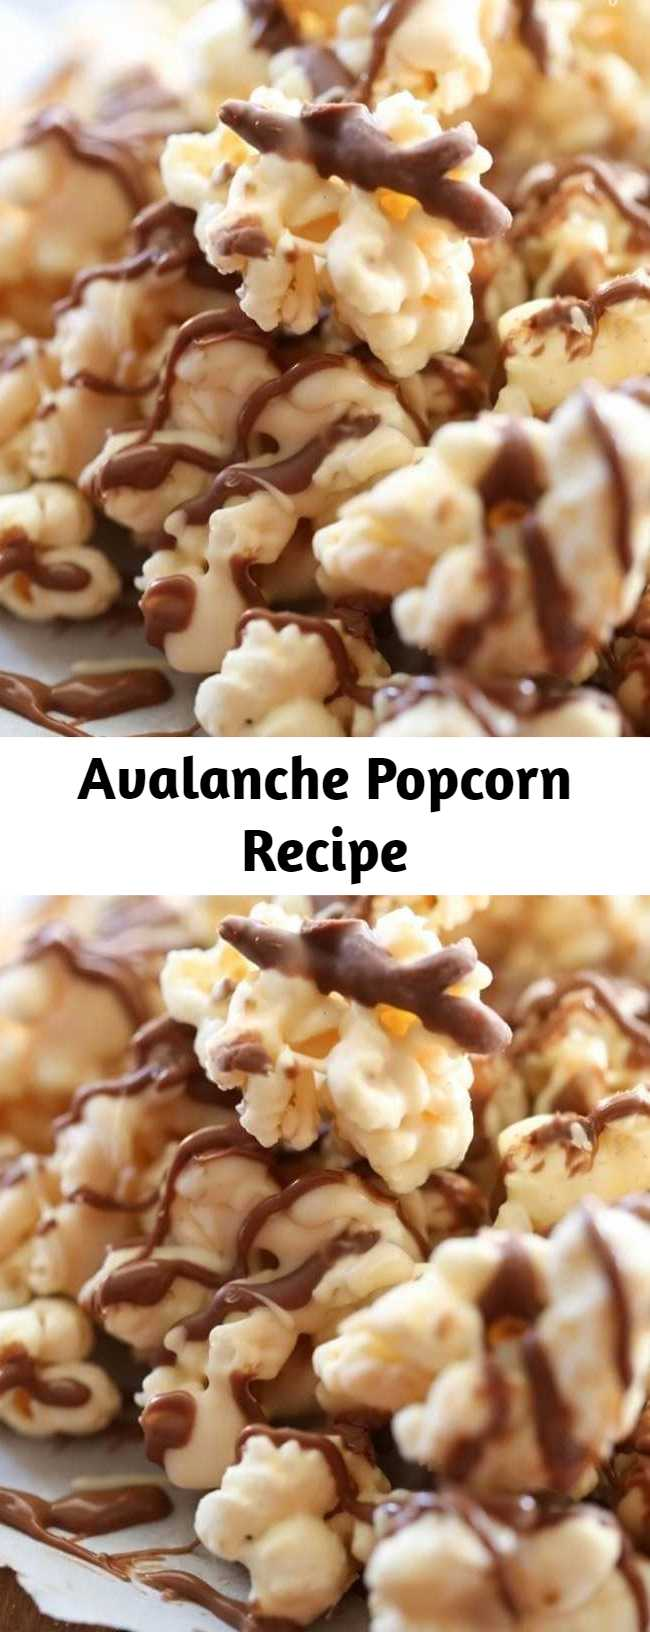 Avalanche Popcorn Recipe - A delicious and addictive snack! Just the right hint of peanut butter and chocolate to make this one popcorn recipe you will want to make over and over again! It is heavenly!